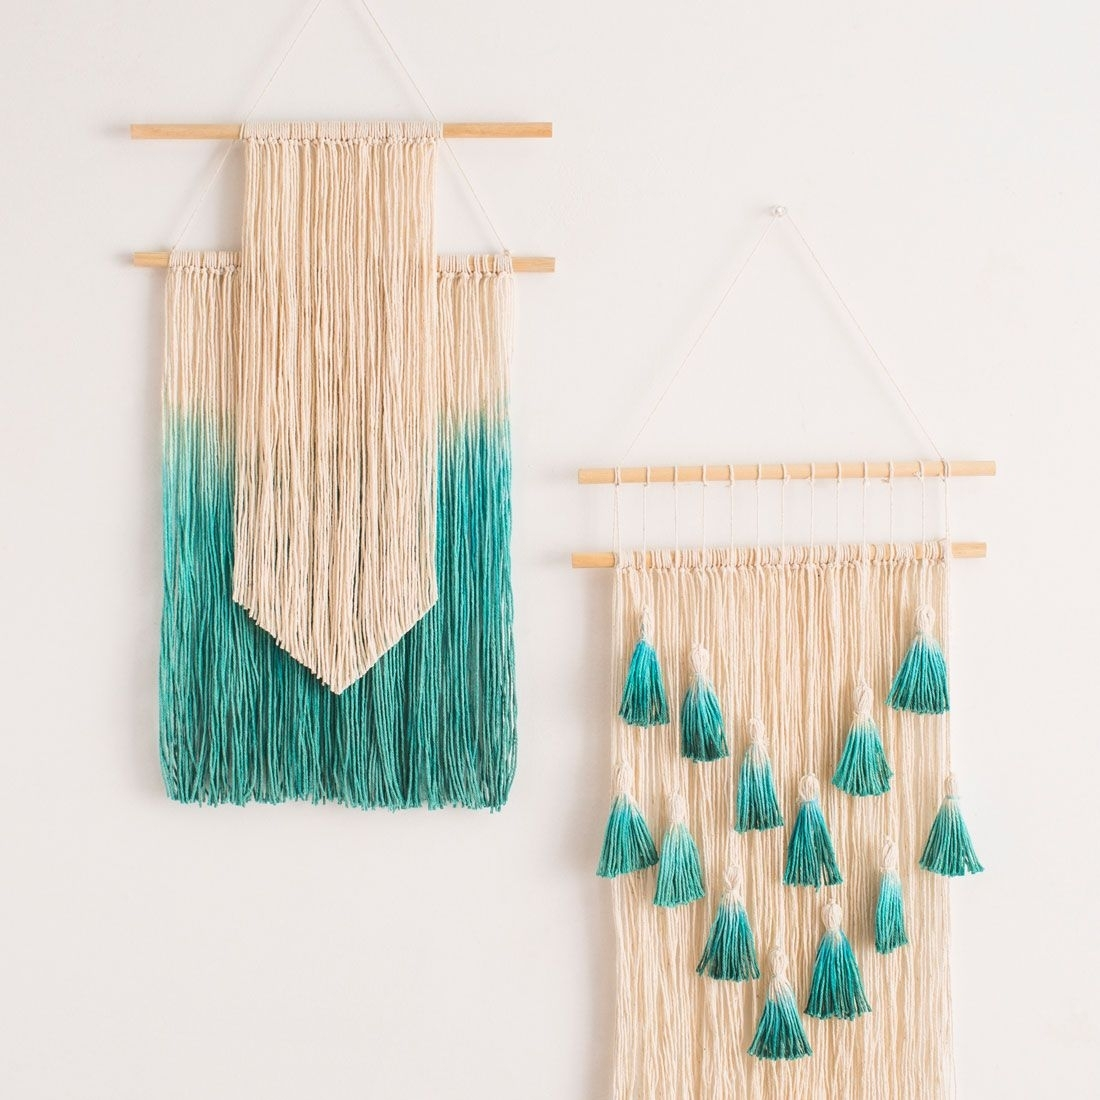 9 Diys For Your College Apartment | Diy Wall Art, Diy Wall And Throughout Latest Dreamcatcher Fabric Wall Art (Gallery 15 of 15)